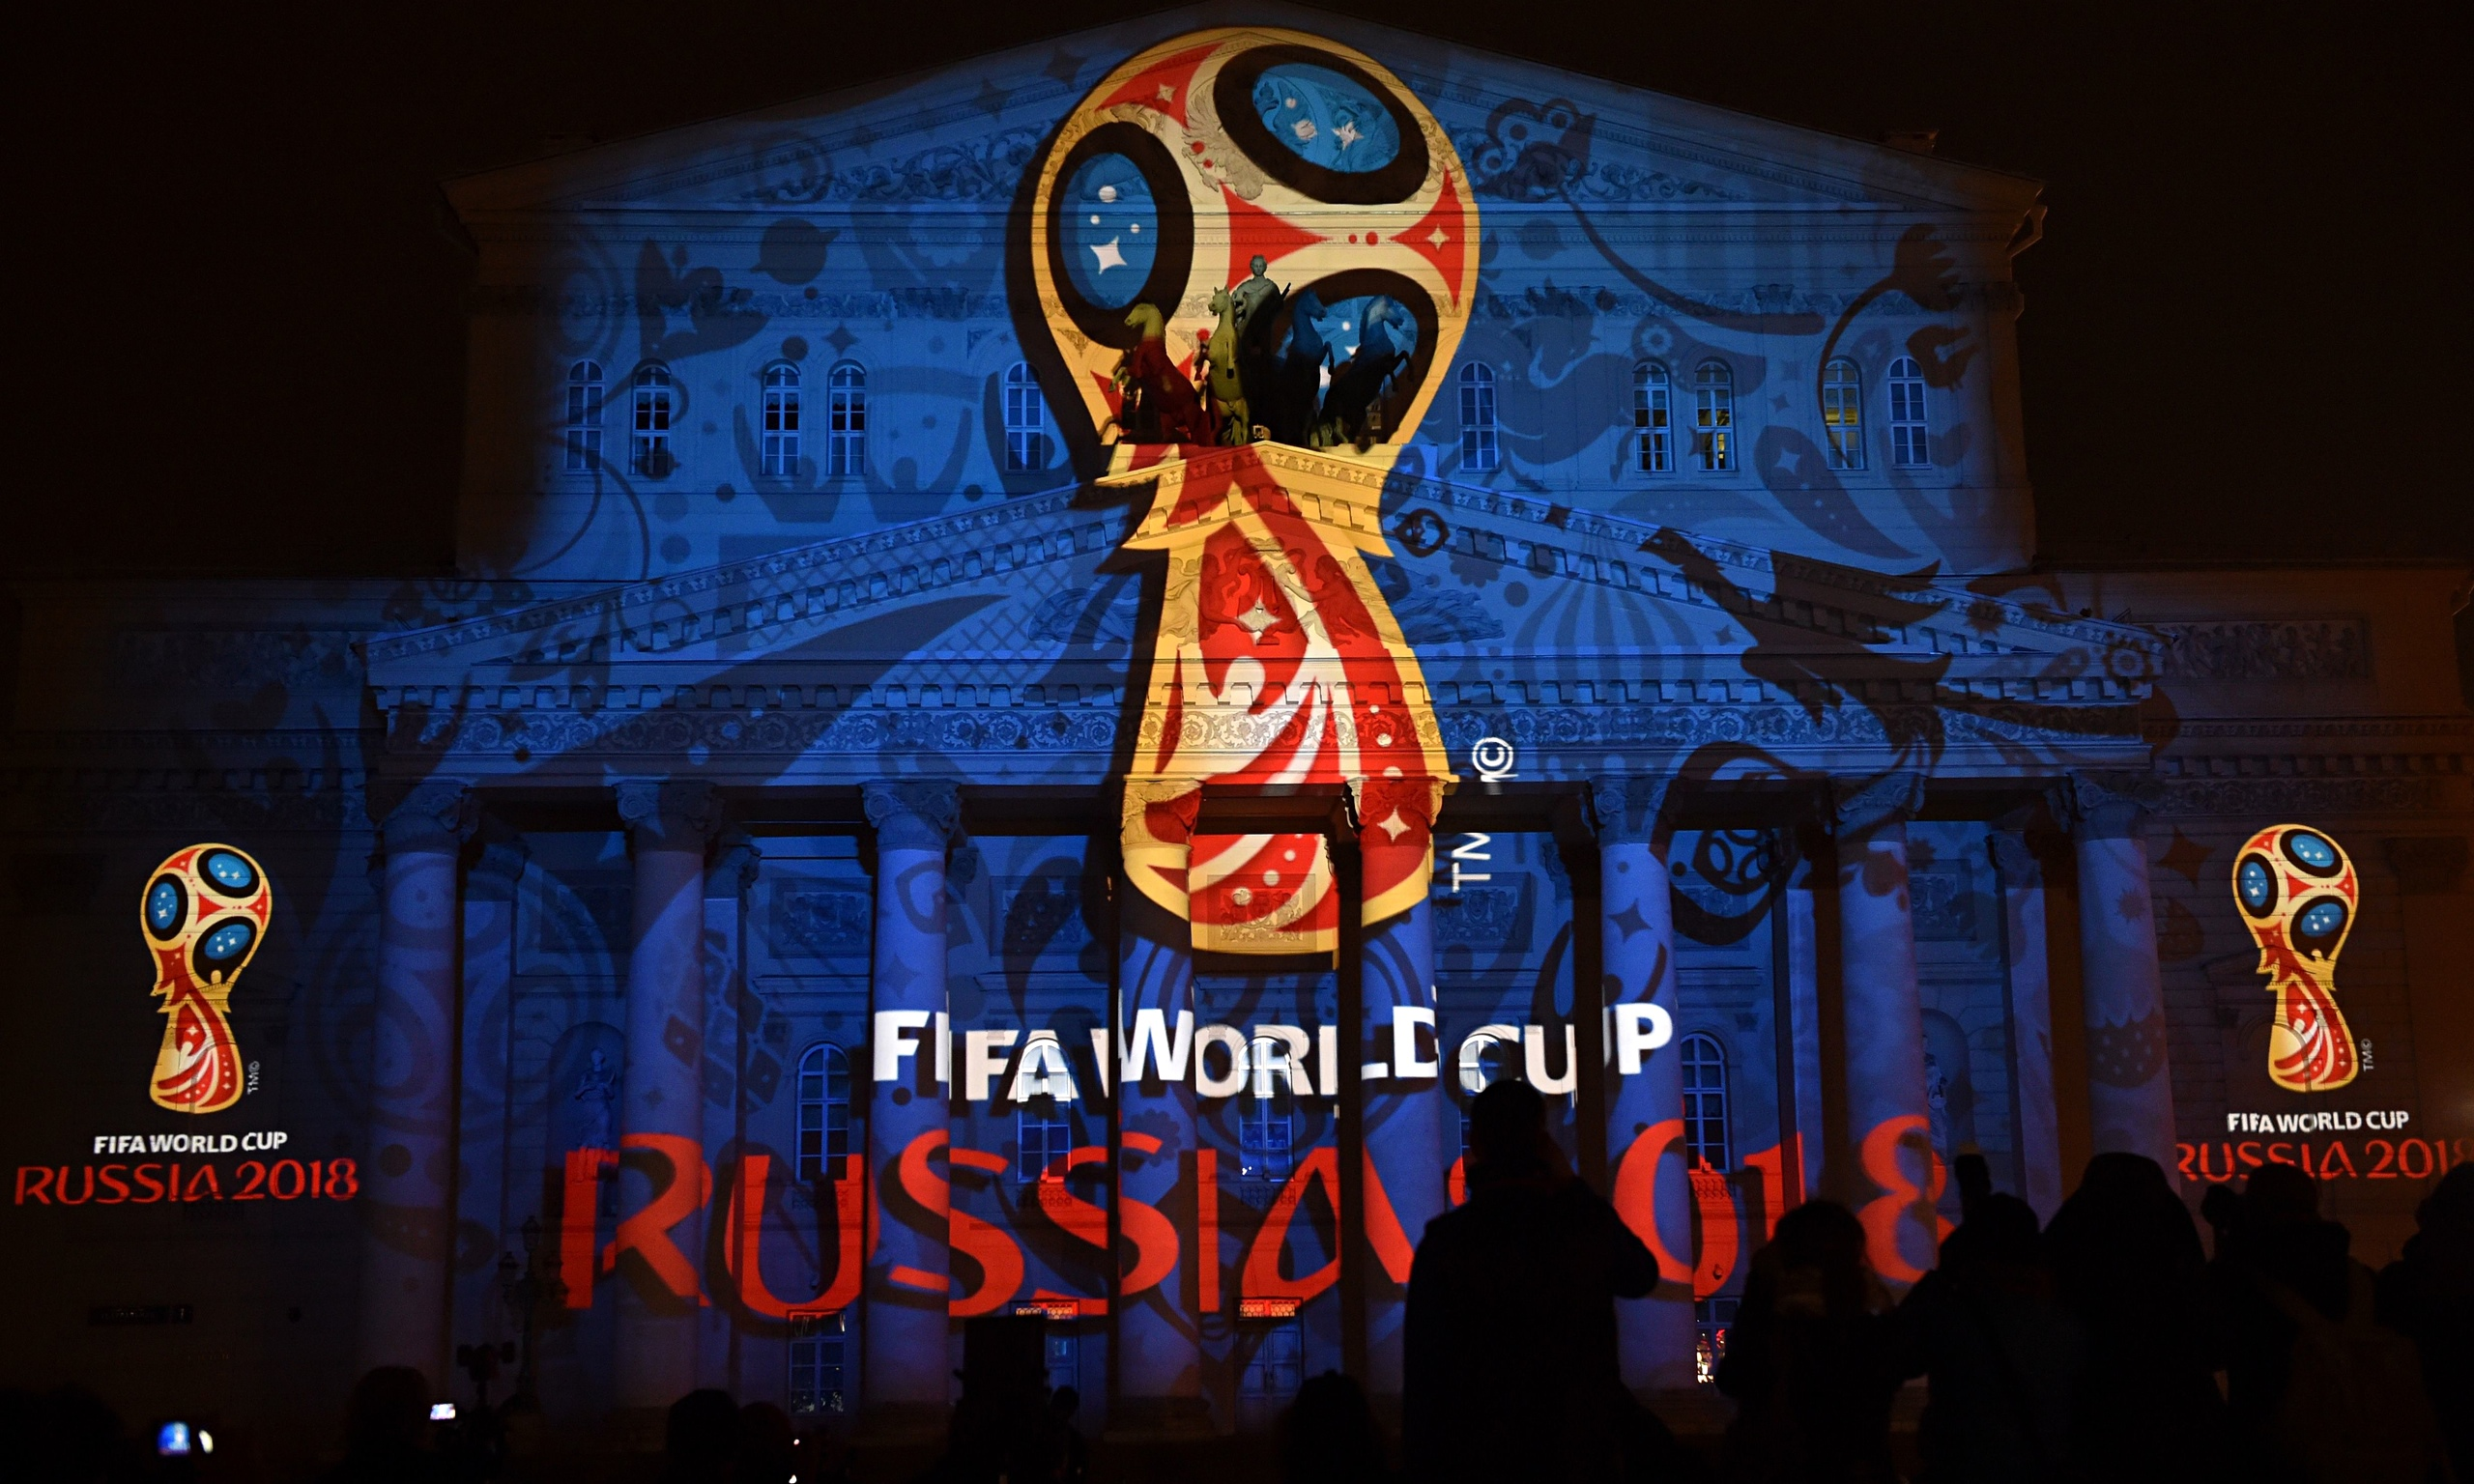 Russia 2018: Could the World Cup be Boycotted?